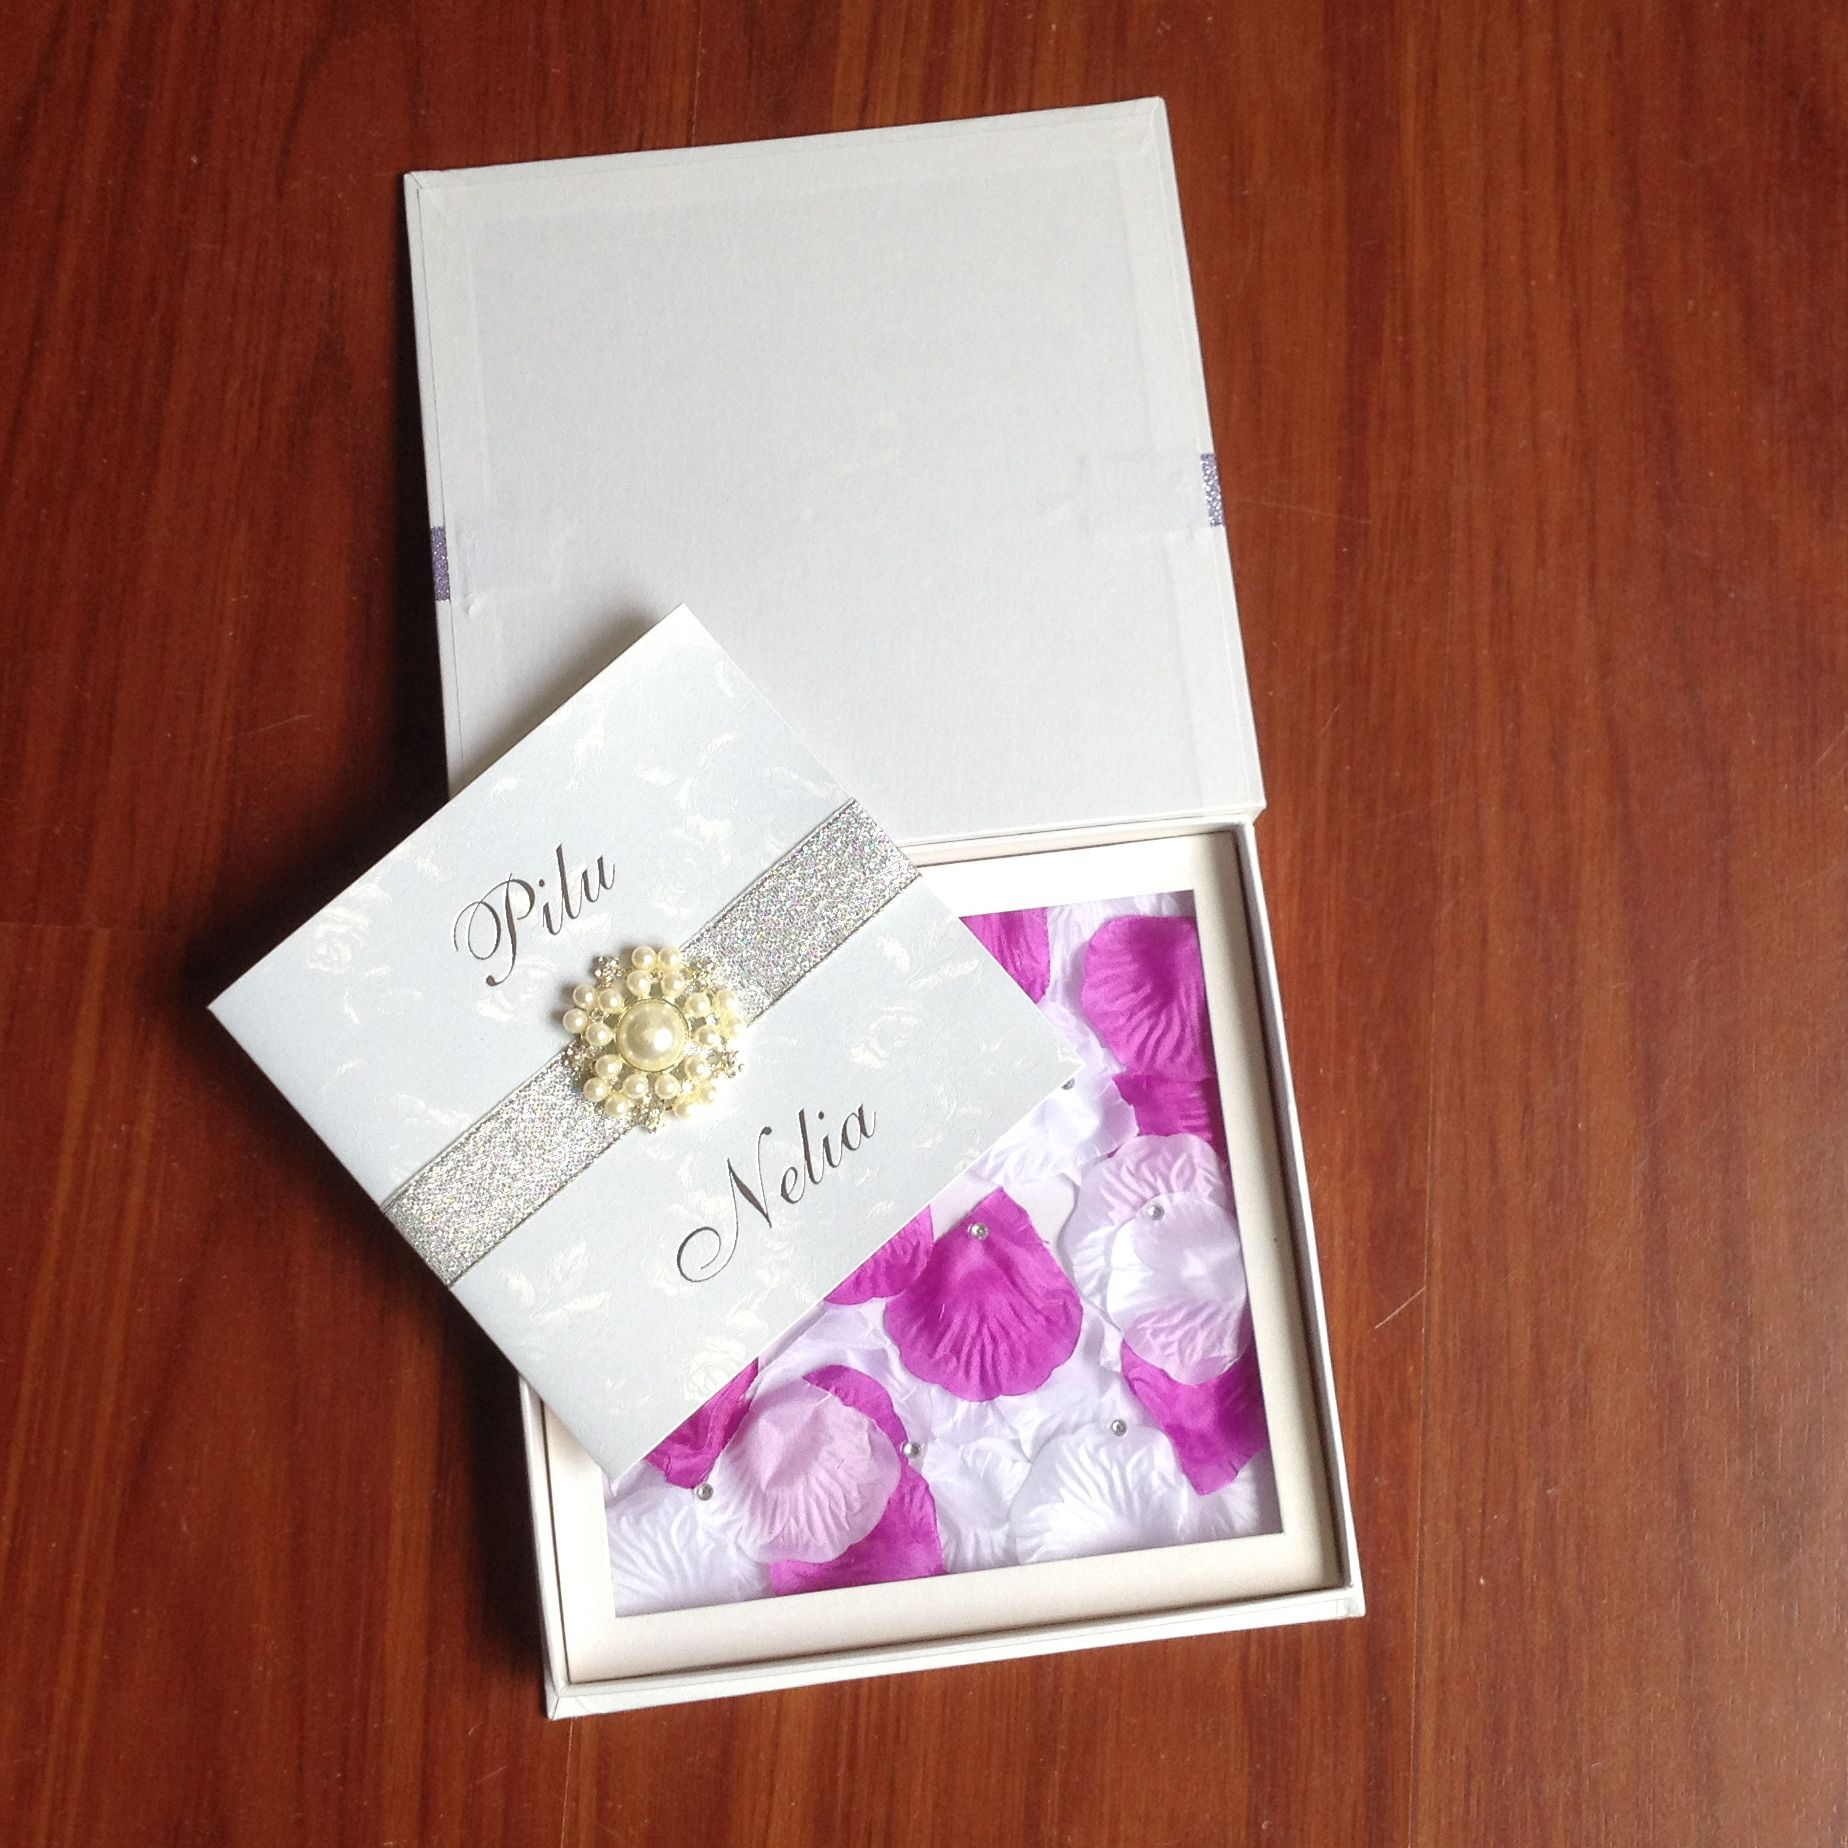 Luxury Boxed Wedding Invitations With Rose Petal | Luxury wedding ...